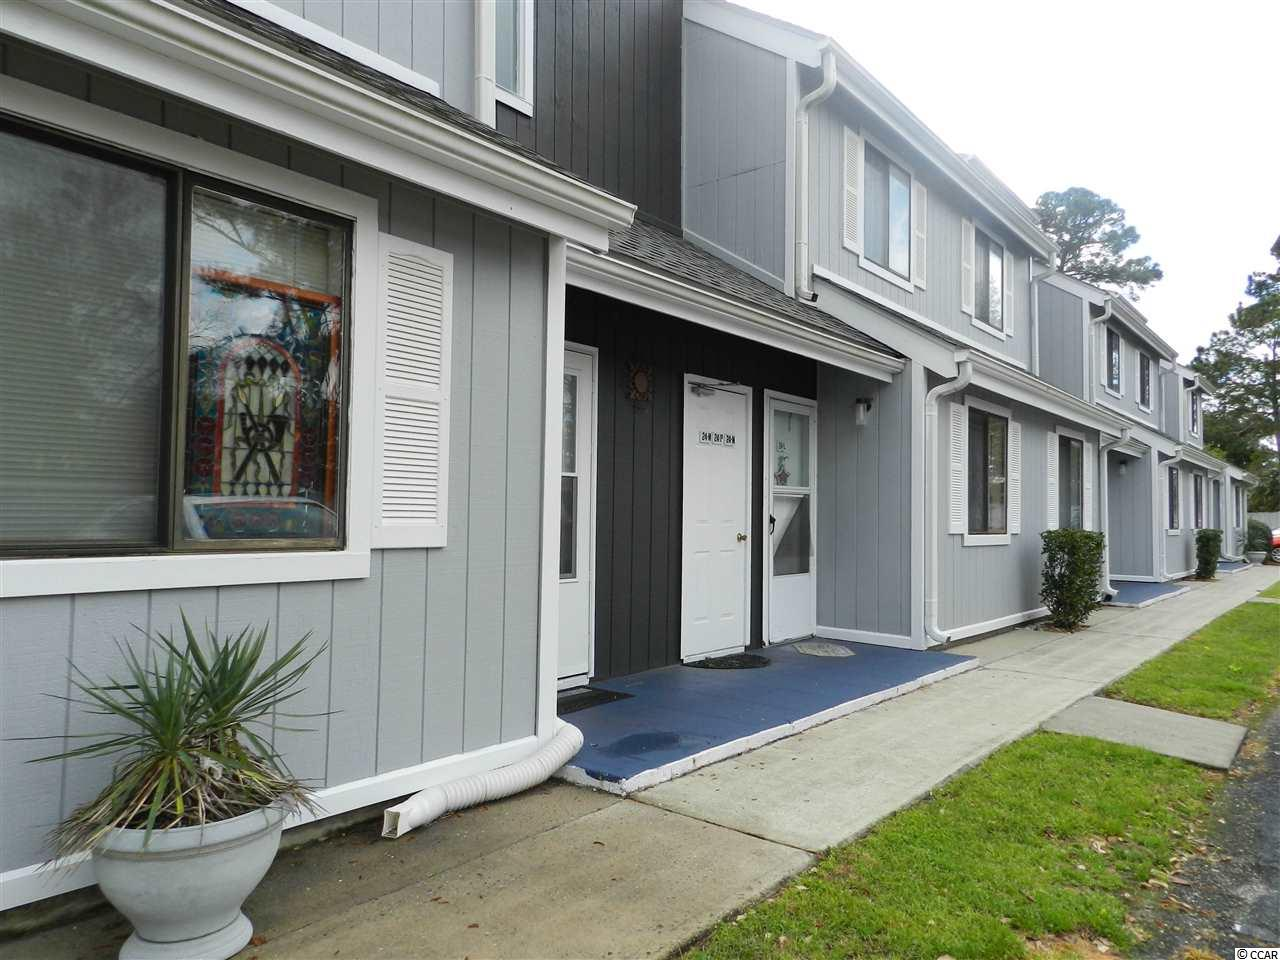 A two bed/two bath END UNIT and generously sized condo located in one of the fastest growing areas in Horry County - Little River! Open concept, spacious, modern condo with vaulted ceilings and a large balcony overlooking the pool!  Fresh wall paint throughout and durable vinyl plank flooring makes this condo superbly move in ready! Refrigerator, range, microwave, dishwasher all to remain.  Bright and airy with skylights and a newer patio sliding door. HOA includes building insurance, basic cable, water, sewer, trash, indoor & outdoor pool, landscaping, pest control, common ground maintenance and lighting. Located within minutes of Cherry Grove Beach & Pier, shopping, restaurants, public boat launch and parks, Hwy 17, Hwy 31, Hwy 9 and Robert Edge Parkway...all SO, SO CLOSE!  All listing information is deemed reliable, but buyers are responsible for verification. Contact your agent today to see Baytree Golf Colony unit 24P!